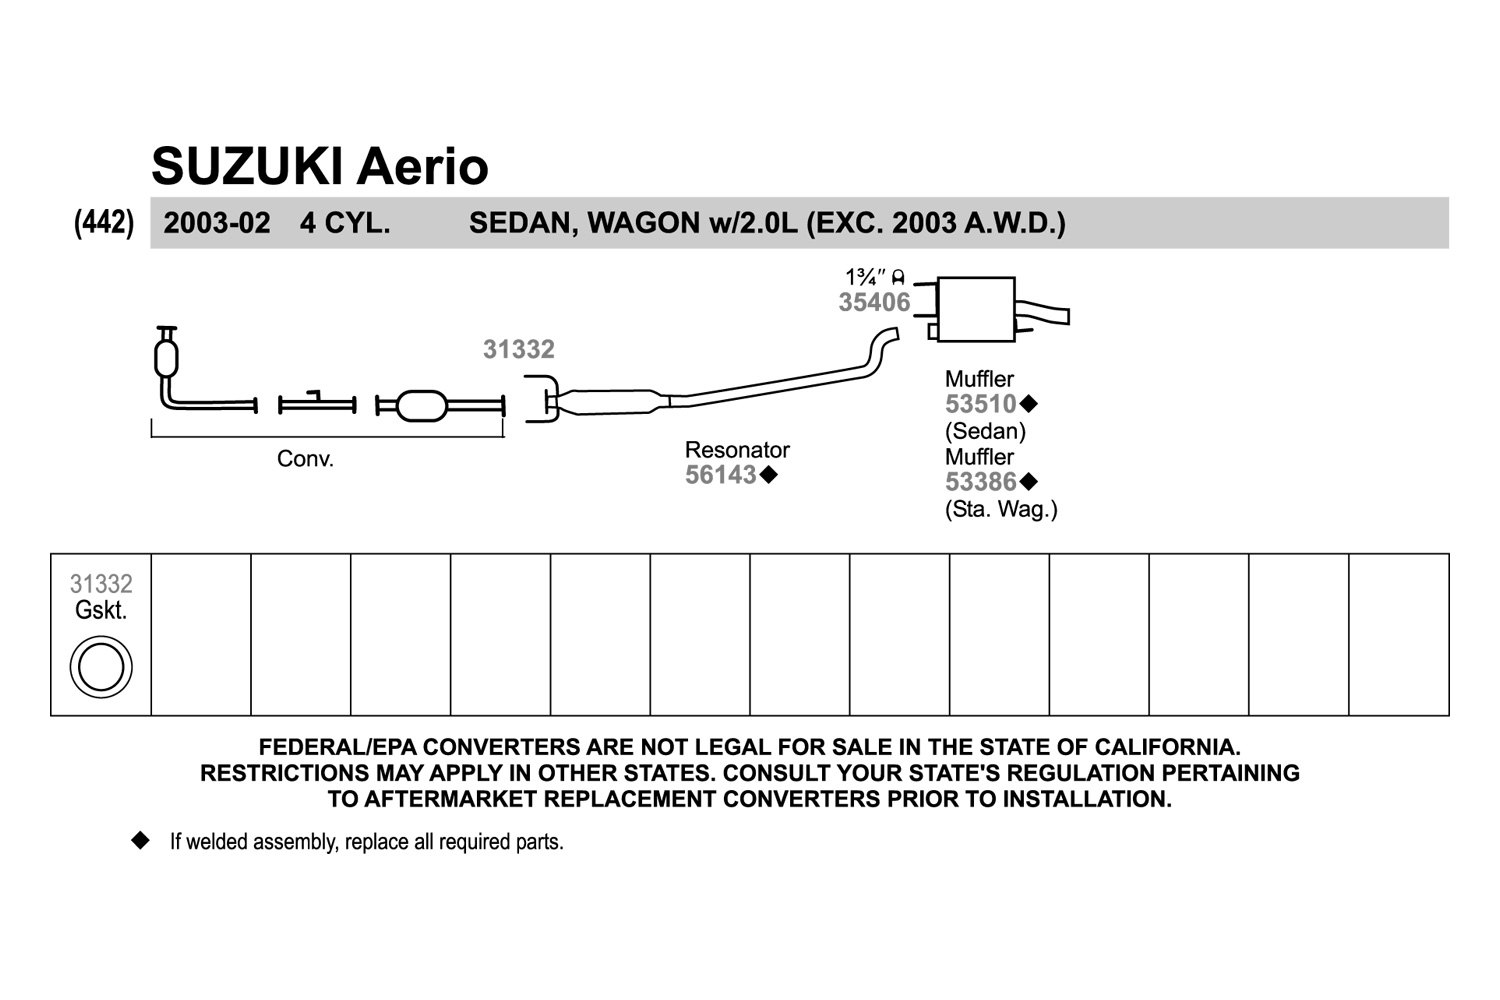 2003 Suzuki Aerio Exhaust Diagram Wiring Data Schema 2006 Fuse Walker Fwd Quiet Flow Stainless Steel Oval Rh Carid Com 2004 Sx